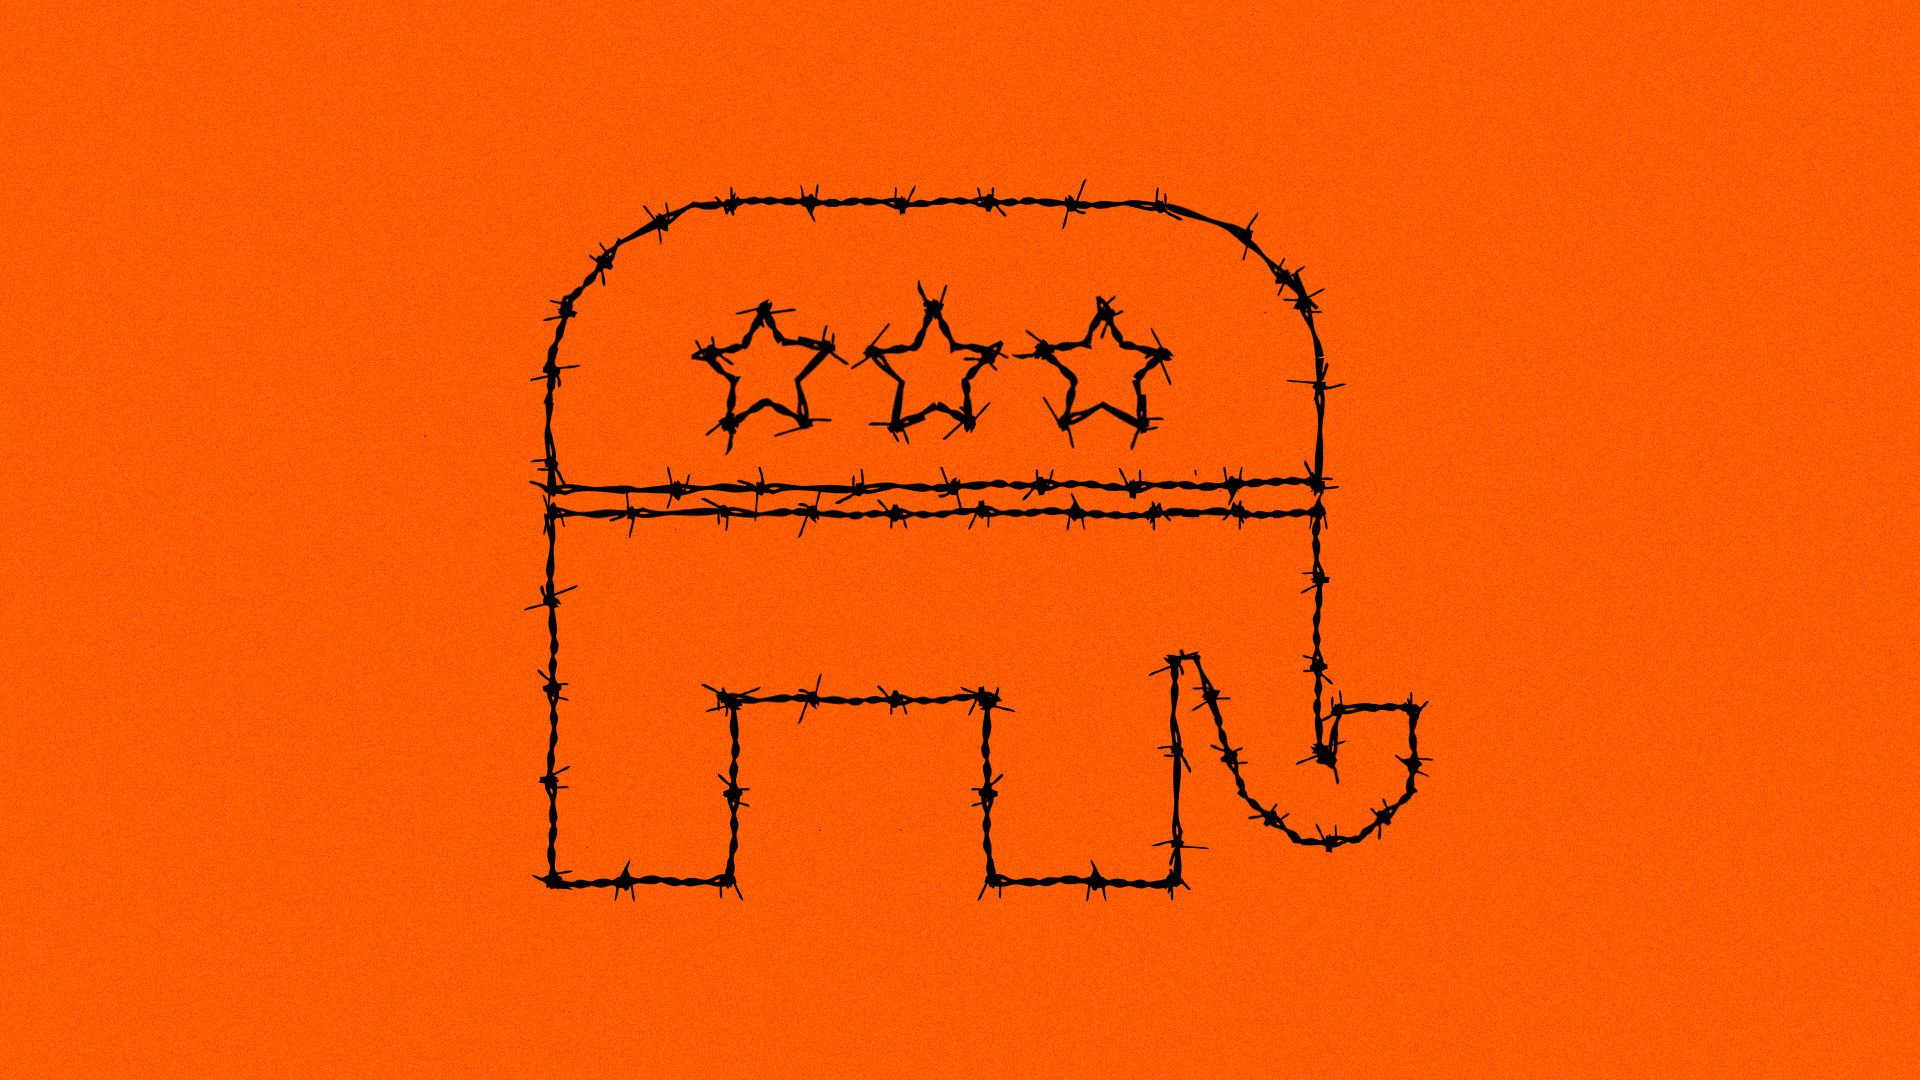 An illustration of a Republican elephant made out of barbed wire